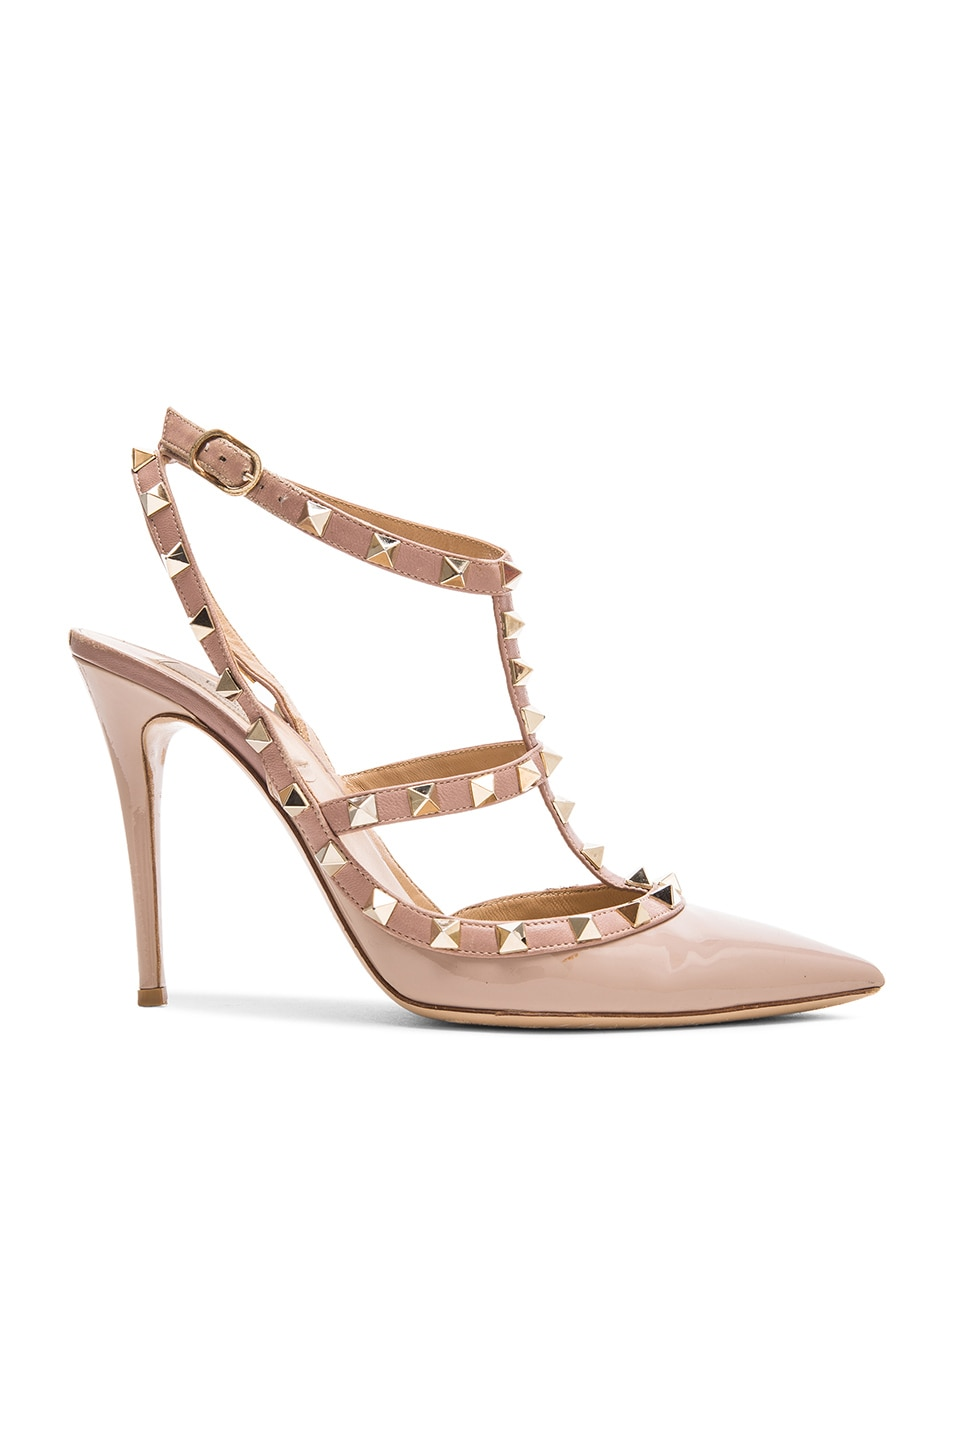 Image 1 of Valentino Rockstud Patent Leather Slingbacks T.100 in Poudre